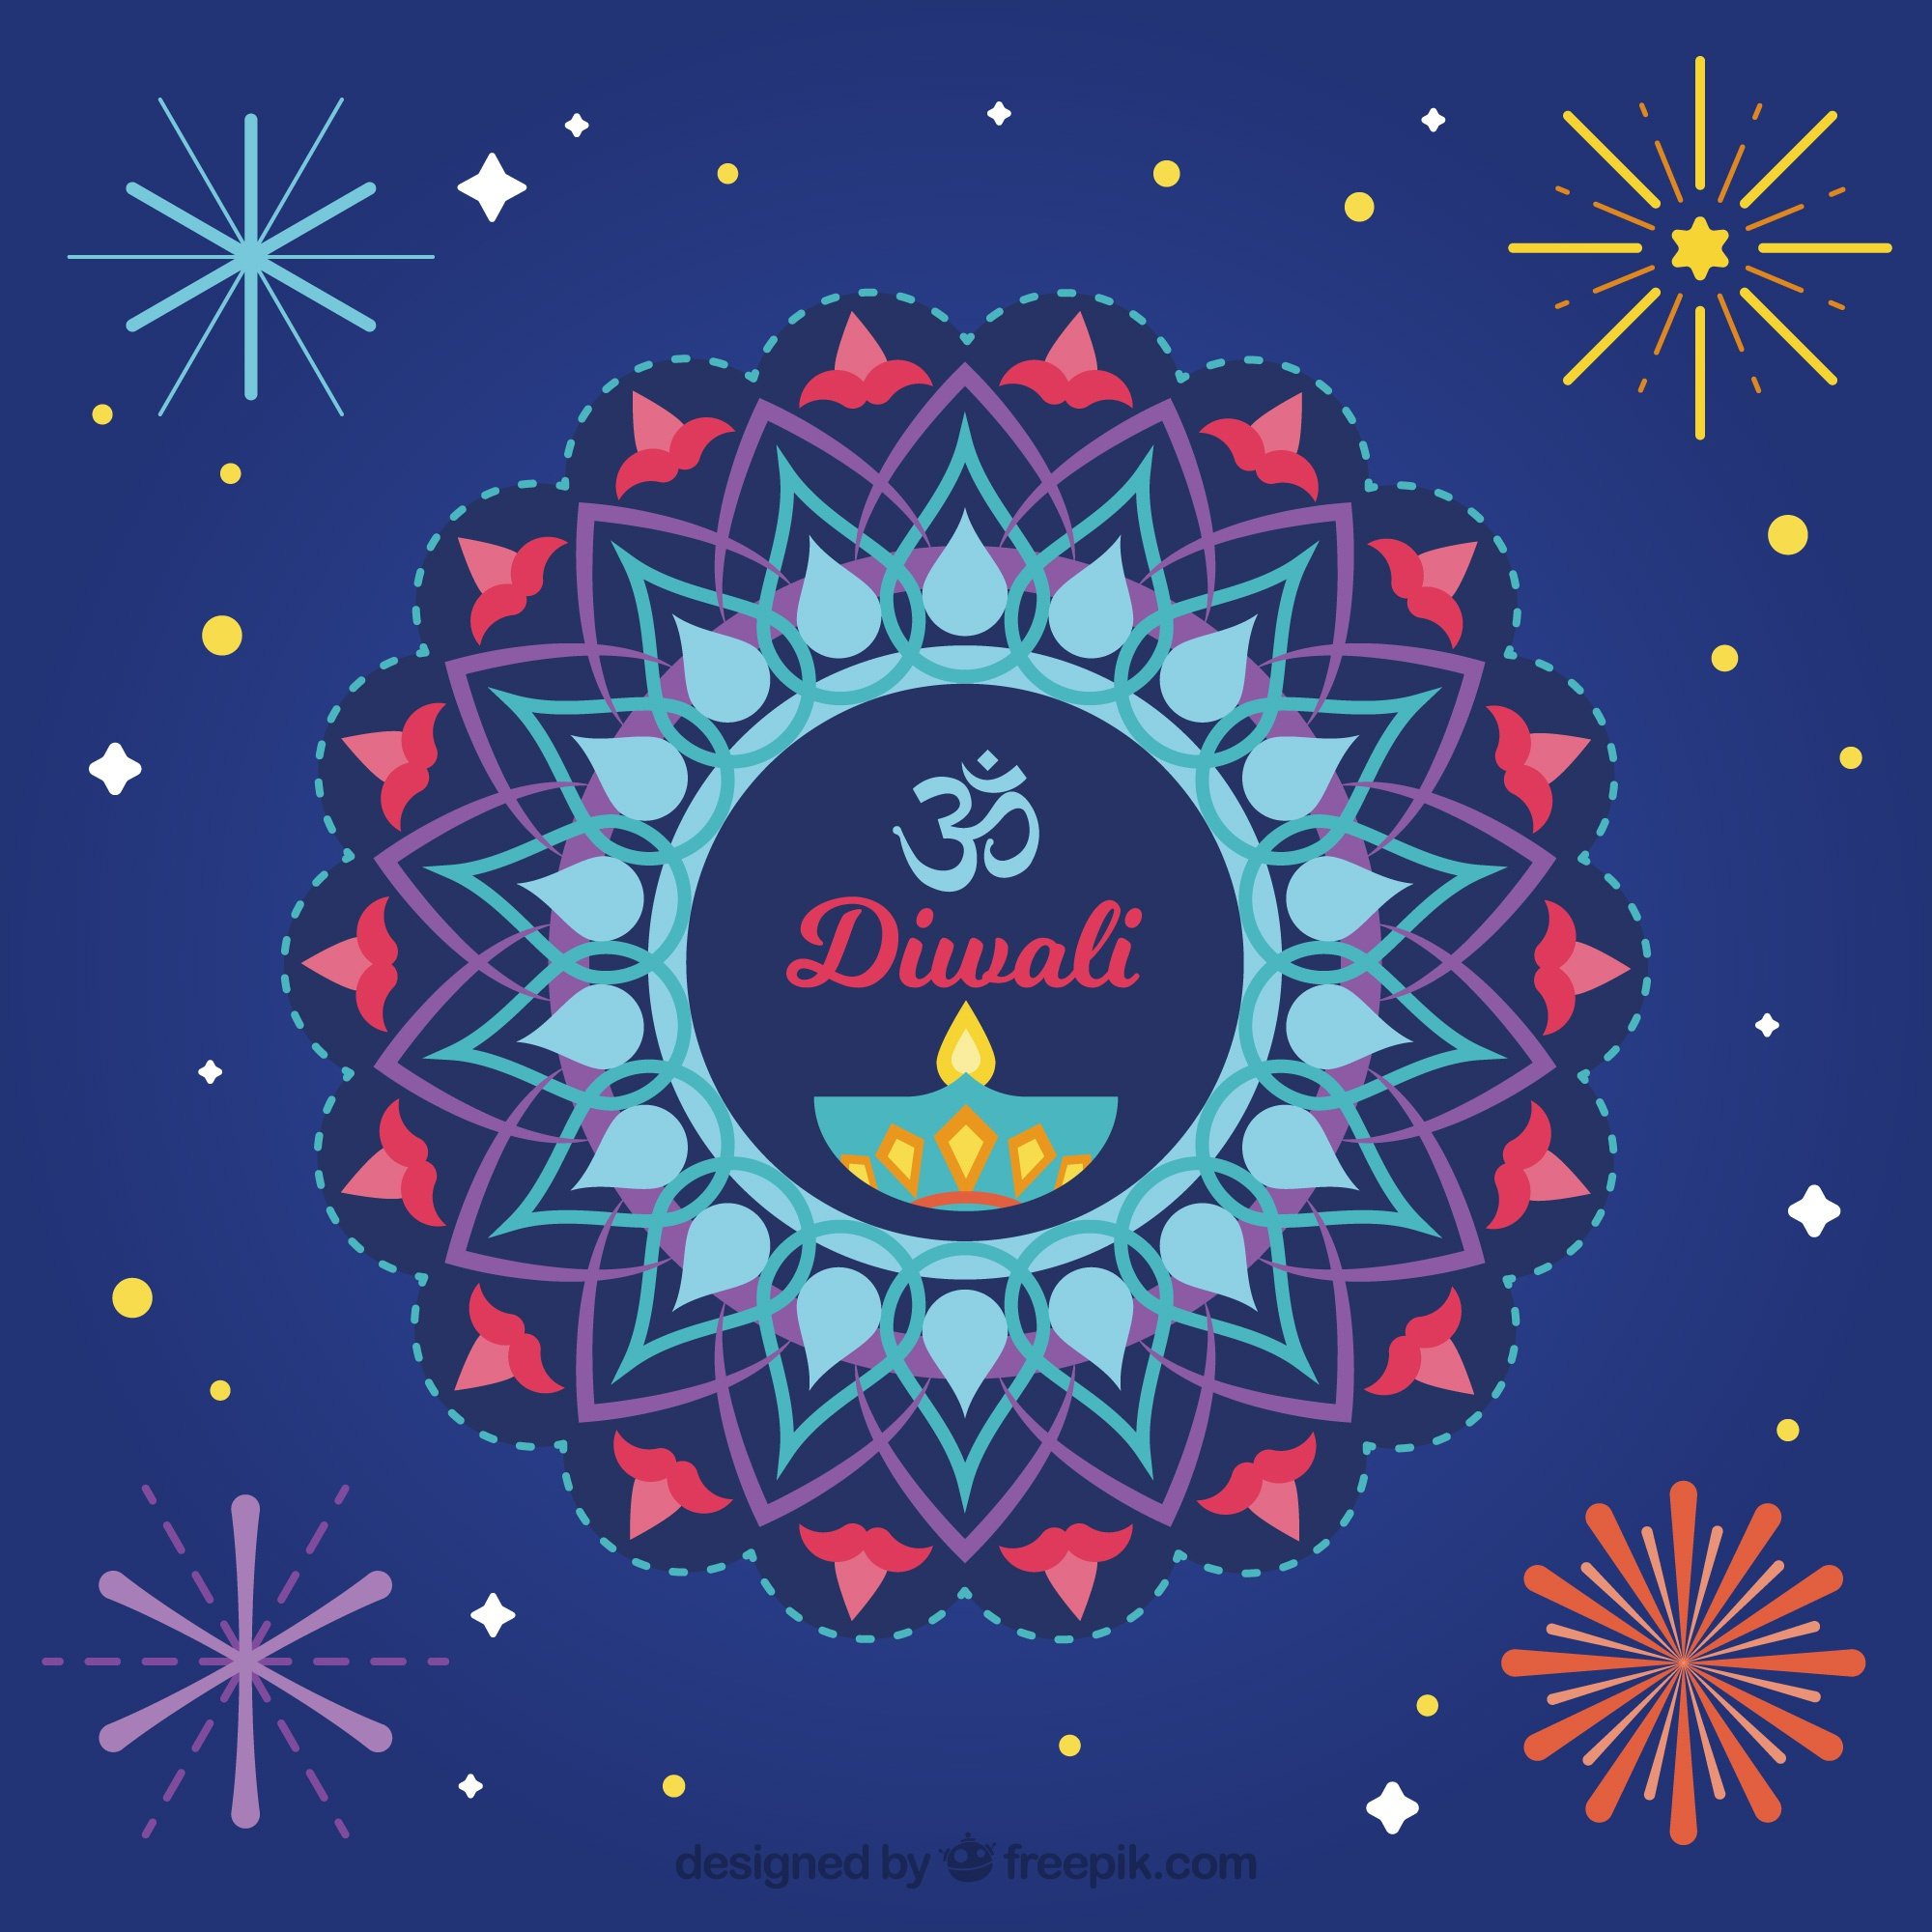 Abstract ornamental background of diwali in flat design